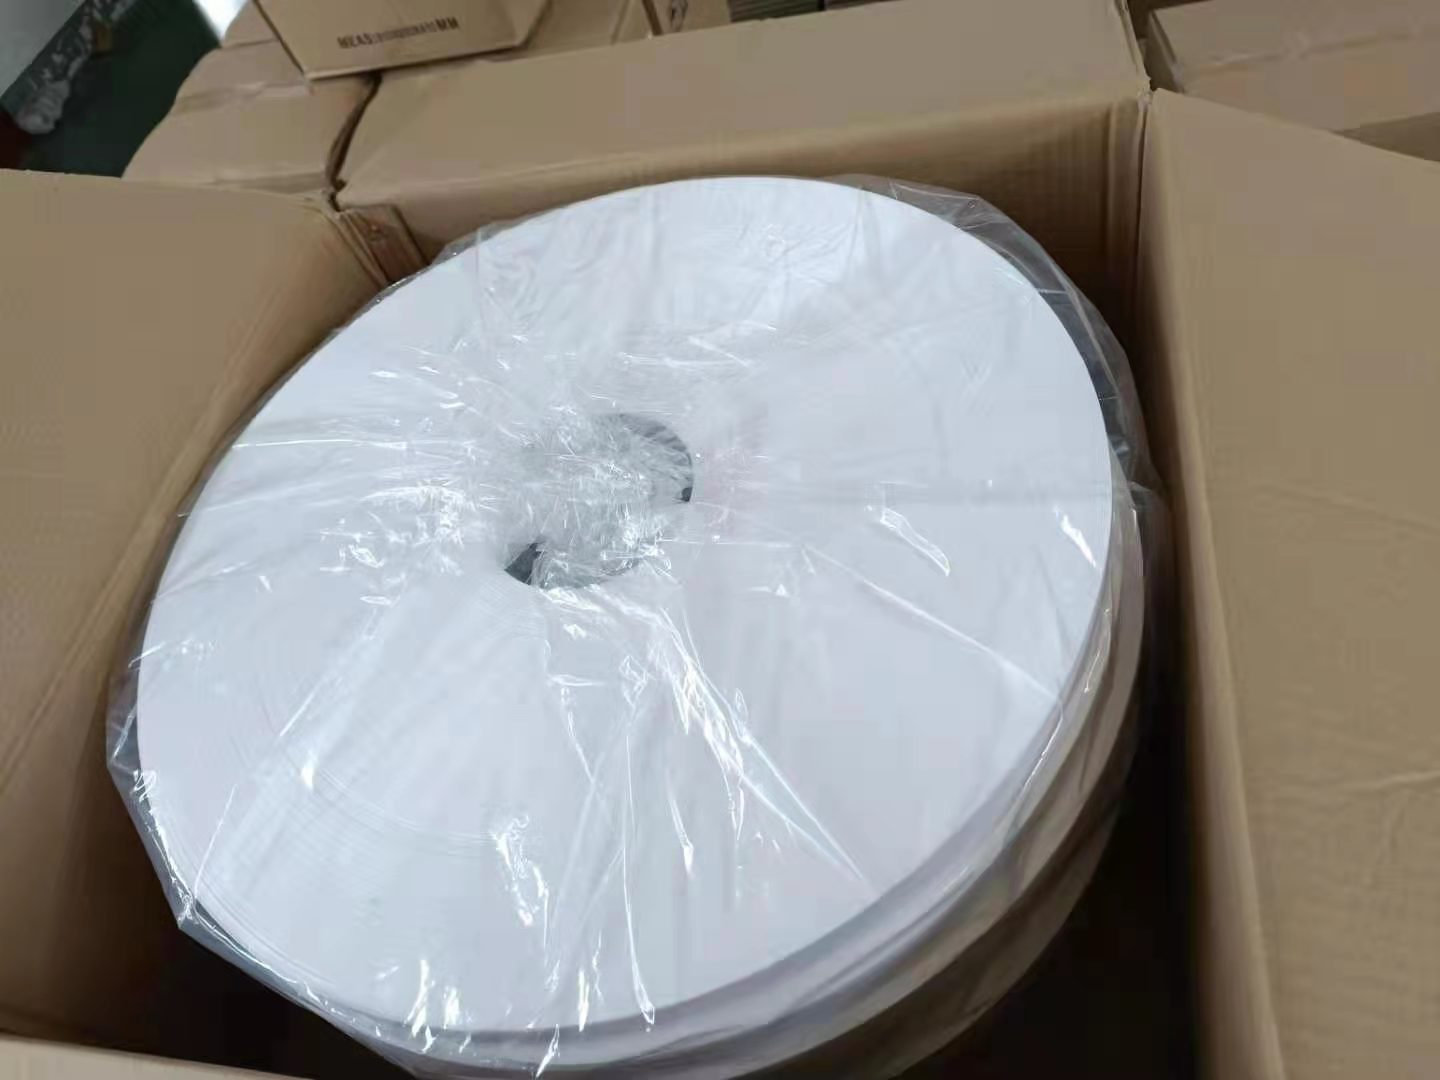 PP foam binder tape/film Polypropylene tape for cable wrapping of the assembled insulated cable cores